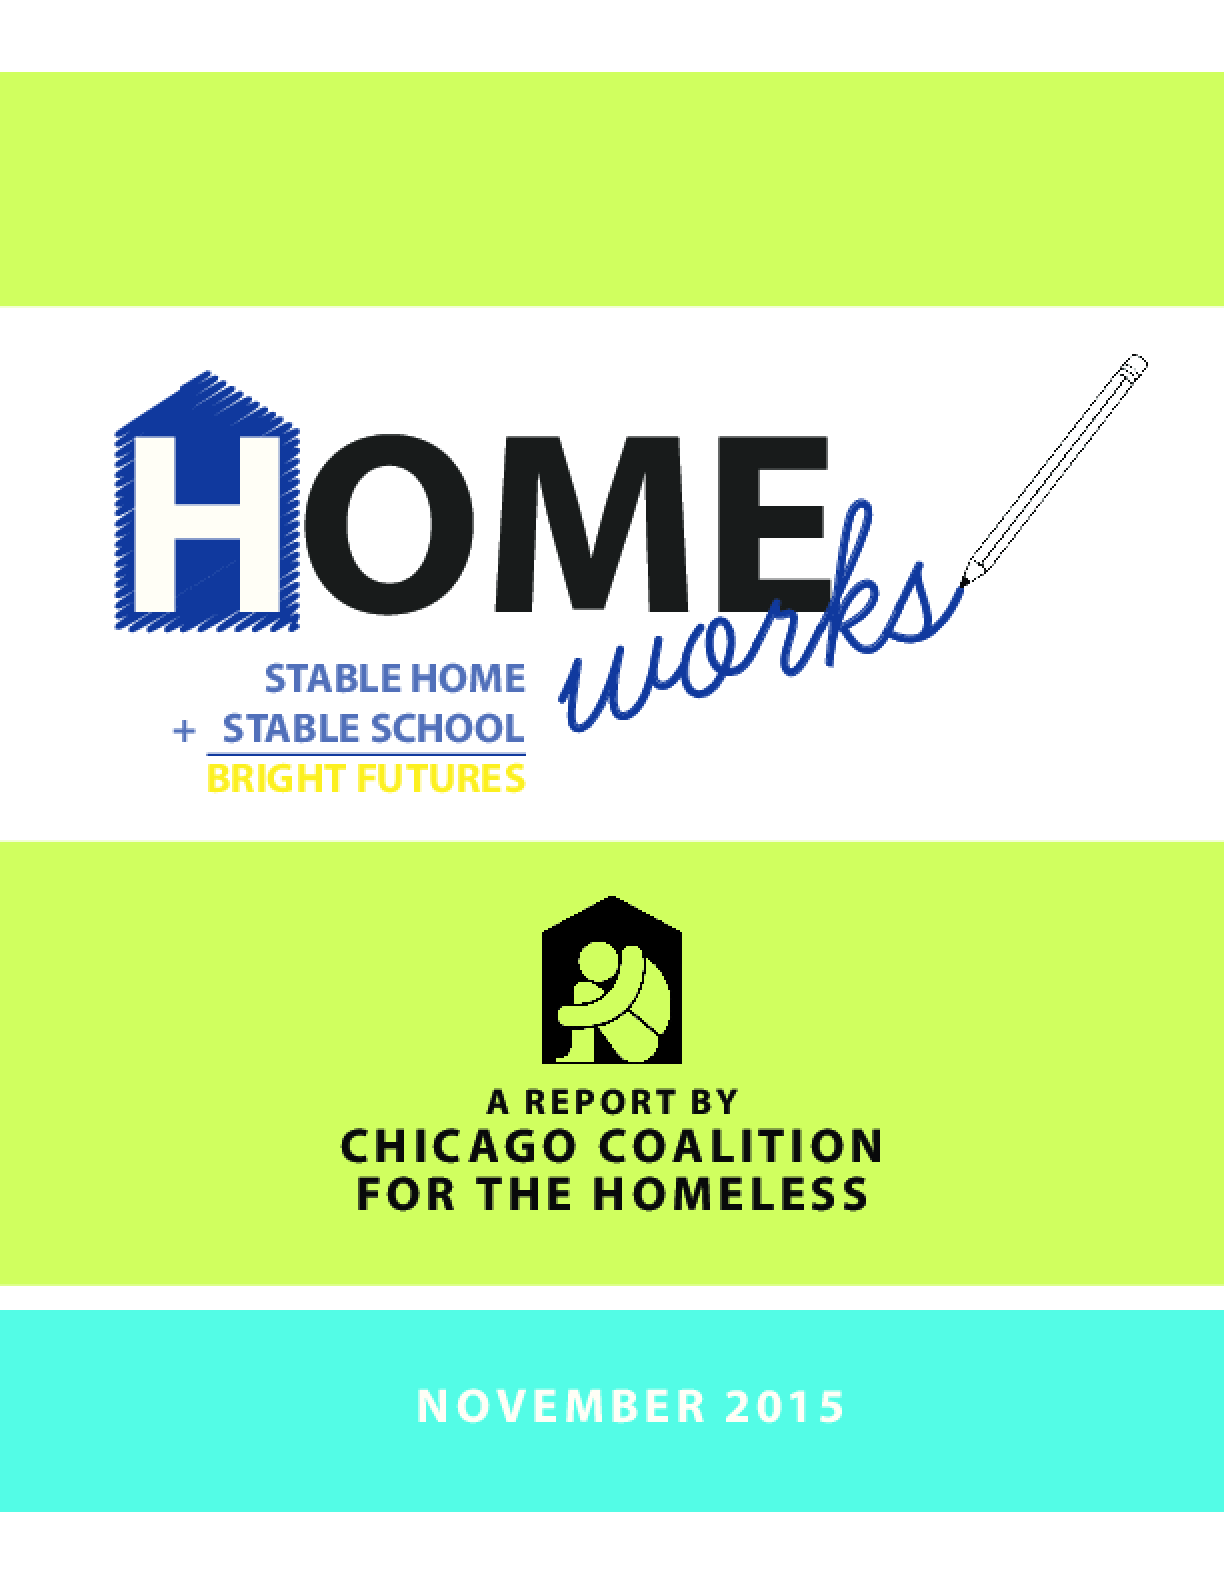 Homeworks: Stable Home + Stable School = Bright Futures